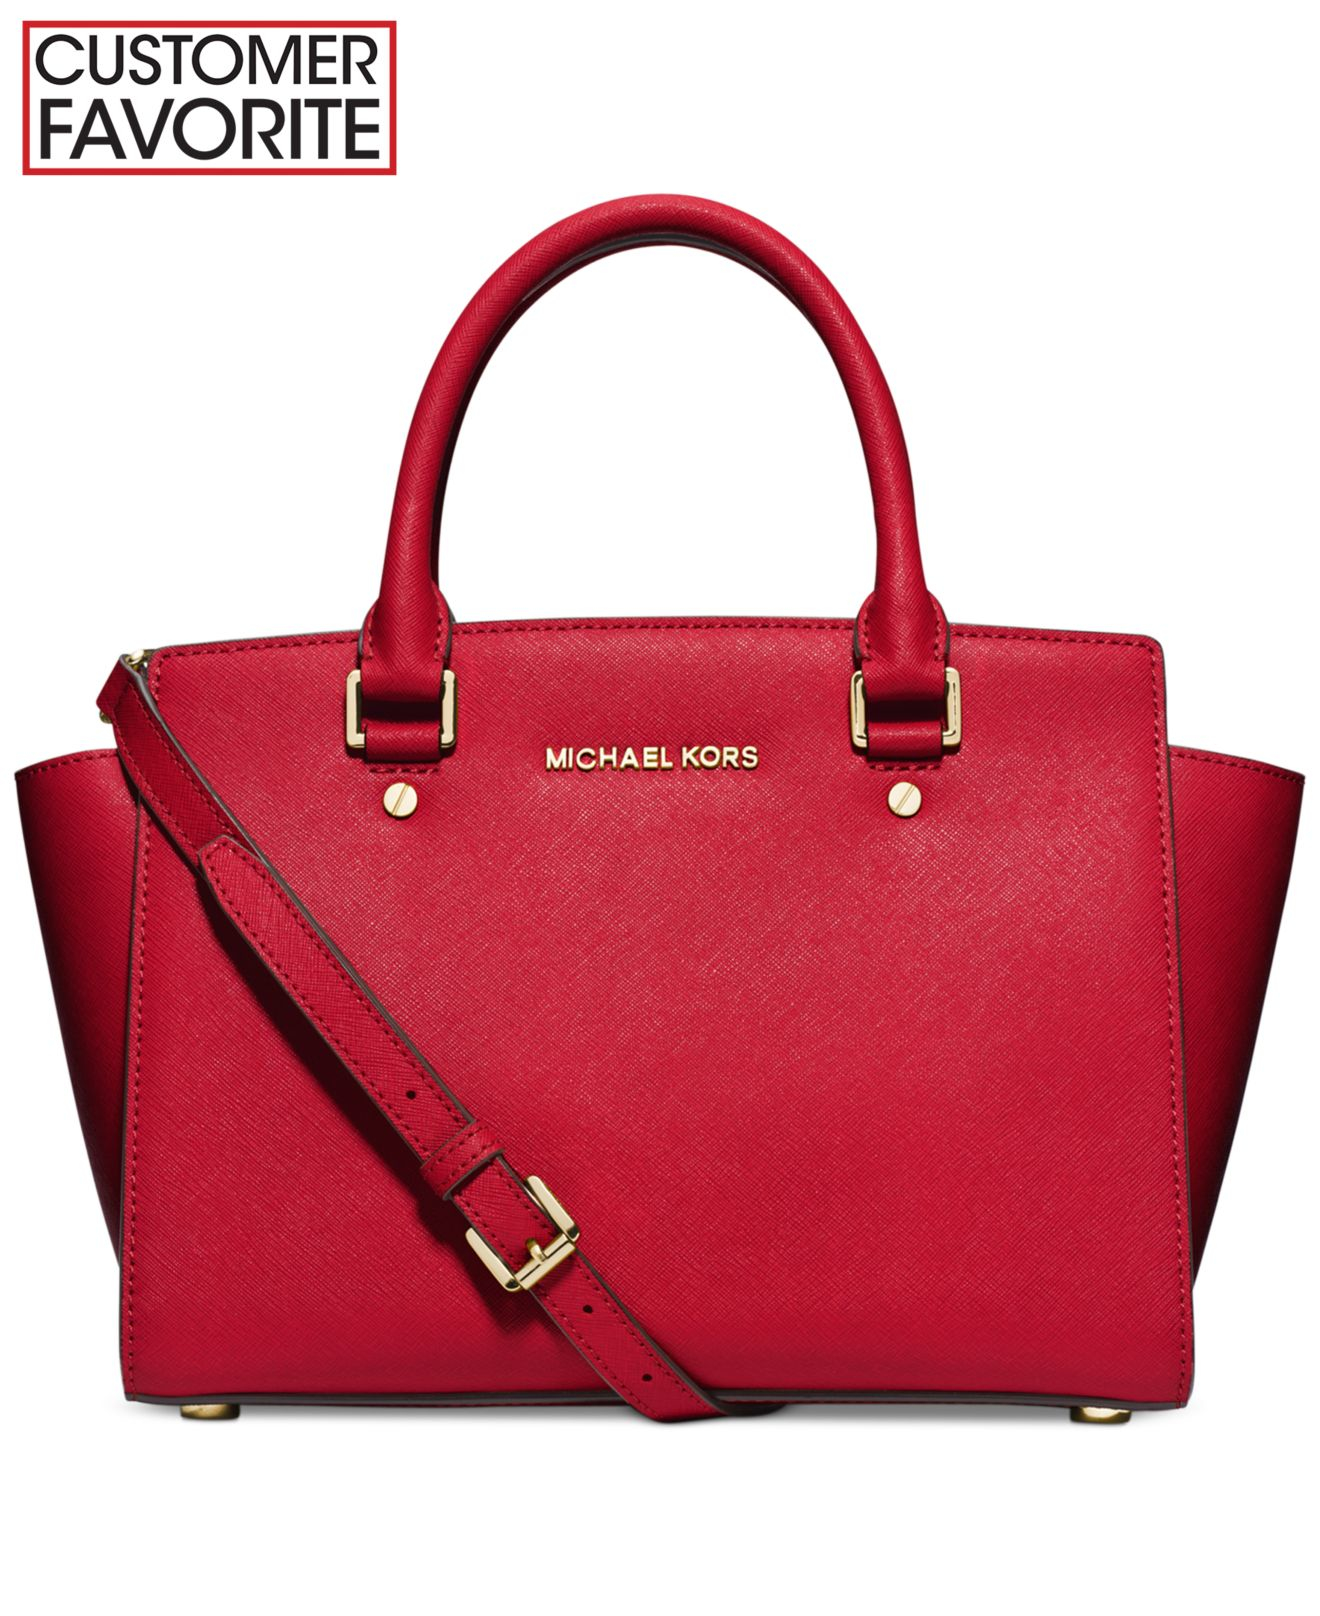 24b8c7cd4c8a9e Michael Kors Red Selma Bag Uk | Stanford Center for Opportunity ...